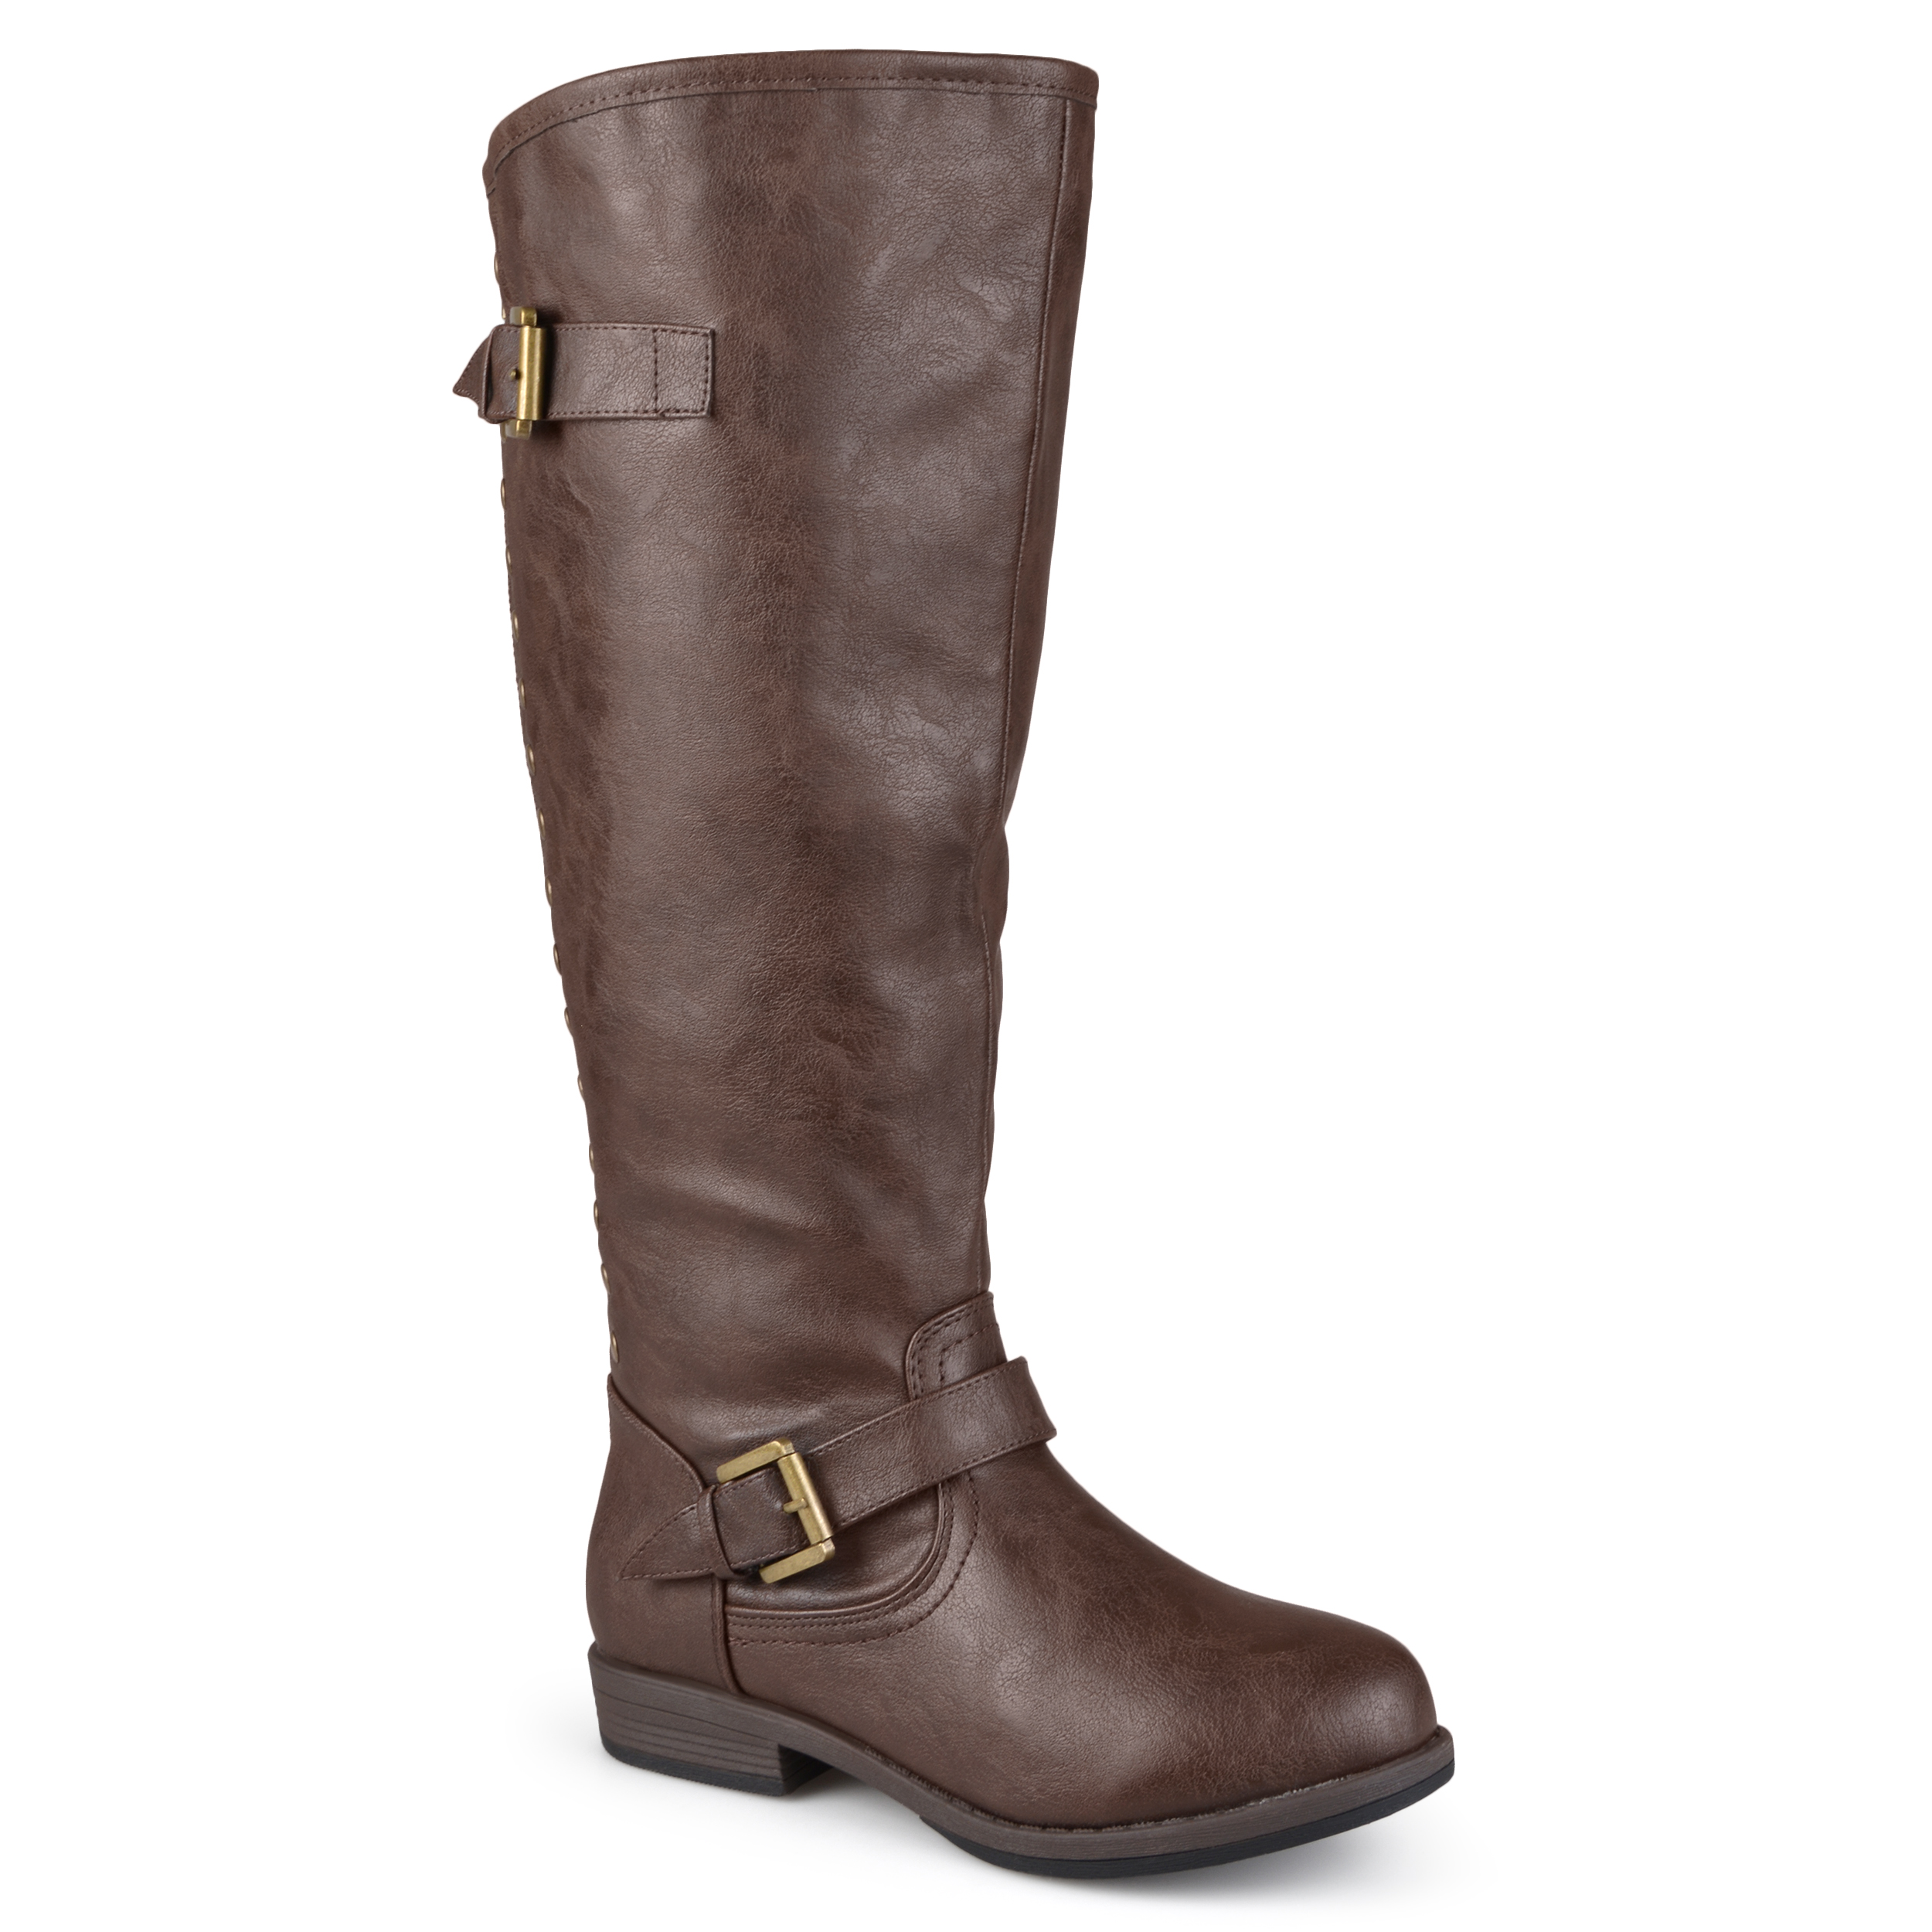 journee collection s wide and wide calf